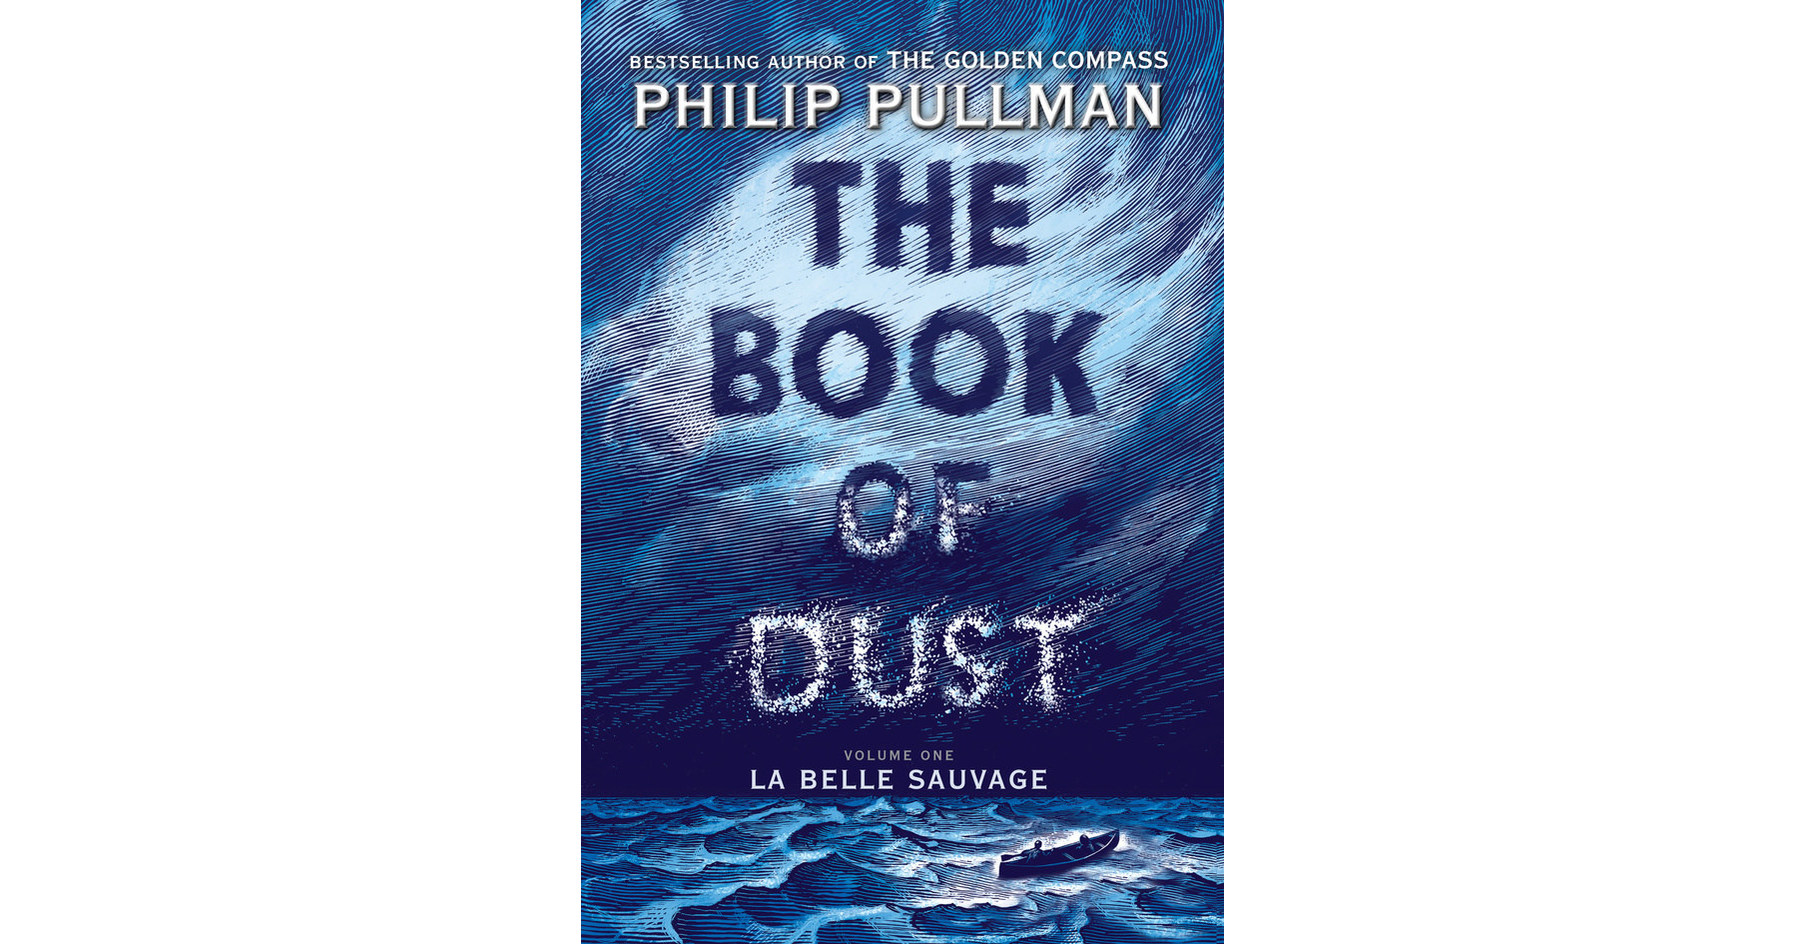 Philip Pullman S The Book Of Dust La Belle Sauvage To Launch October 19 With Global Campaign